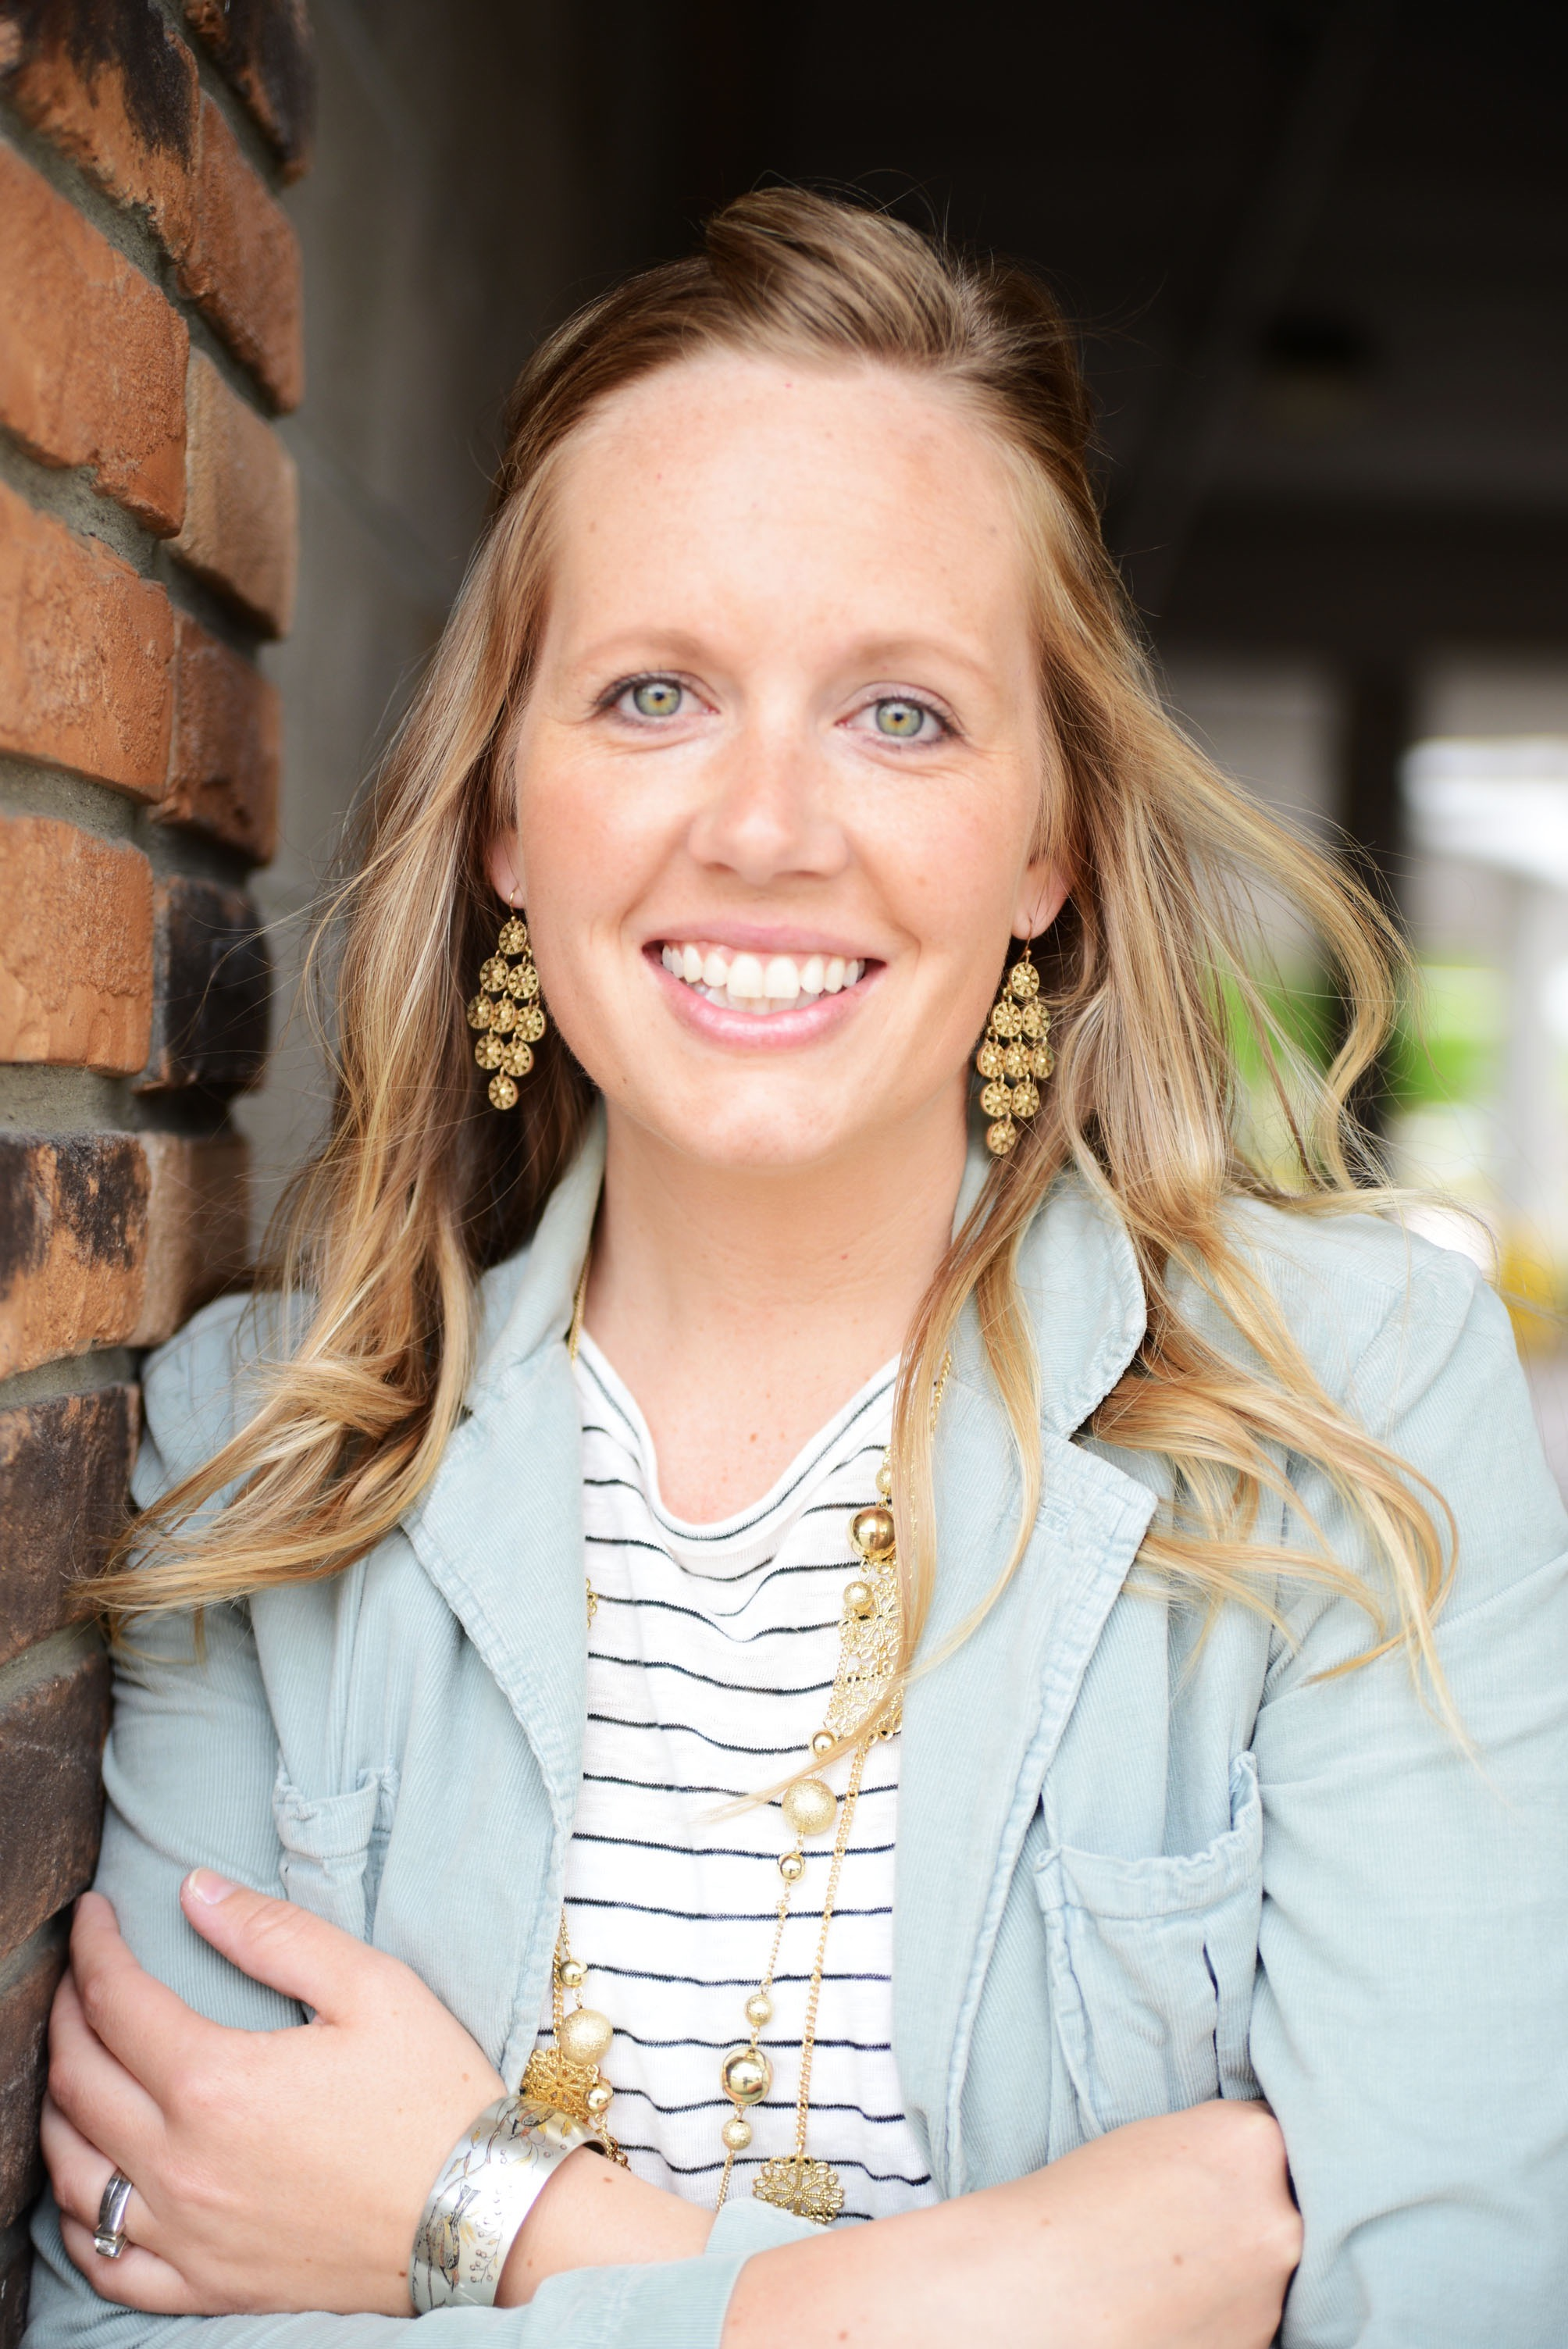 Lead Interior Designer and Space Planning - Hallie Veith in Denver, CO Design materials for kitchens, baths, and remodels